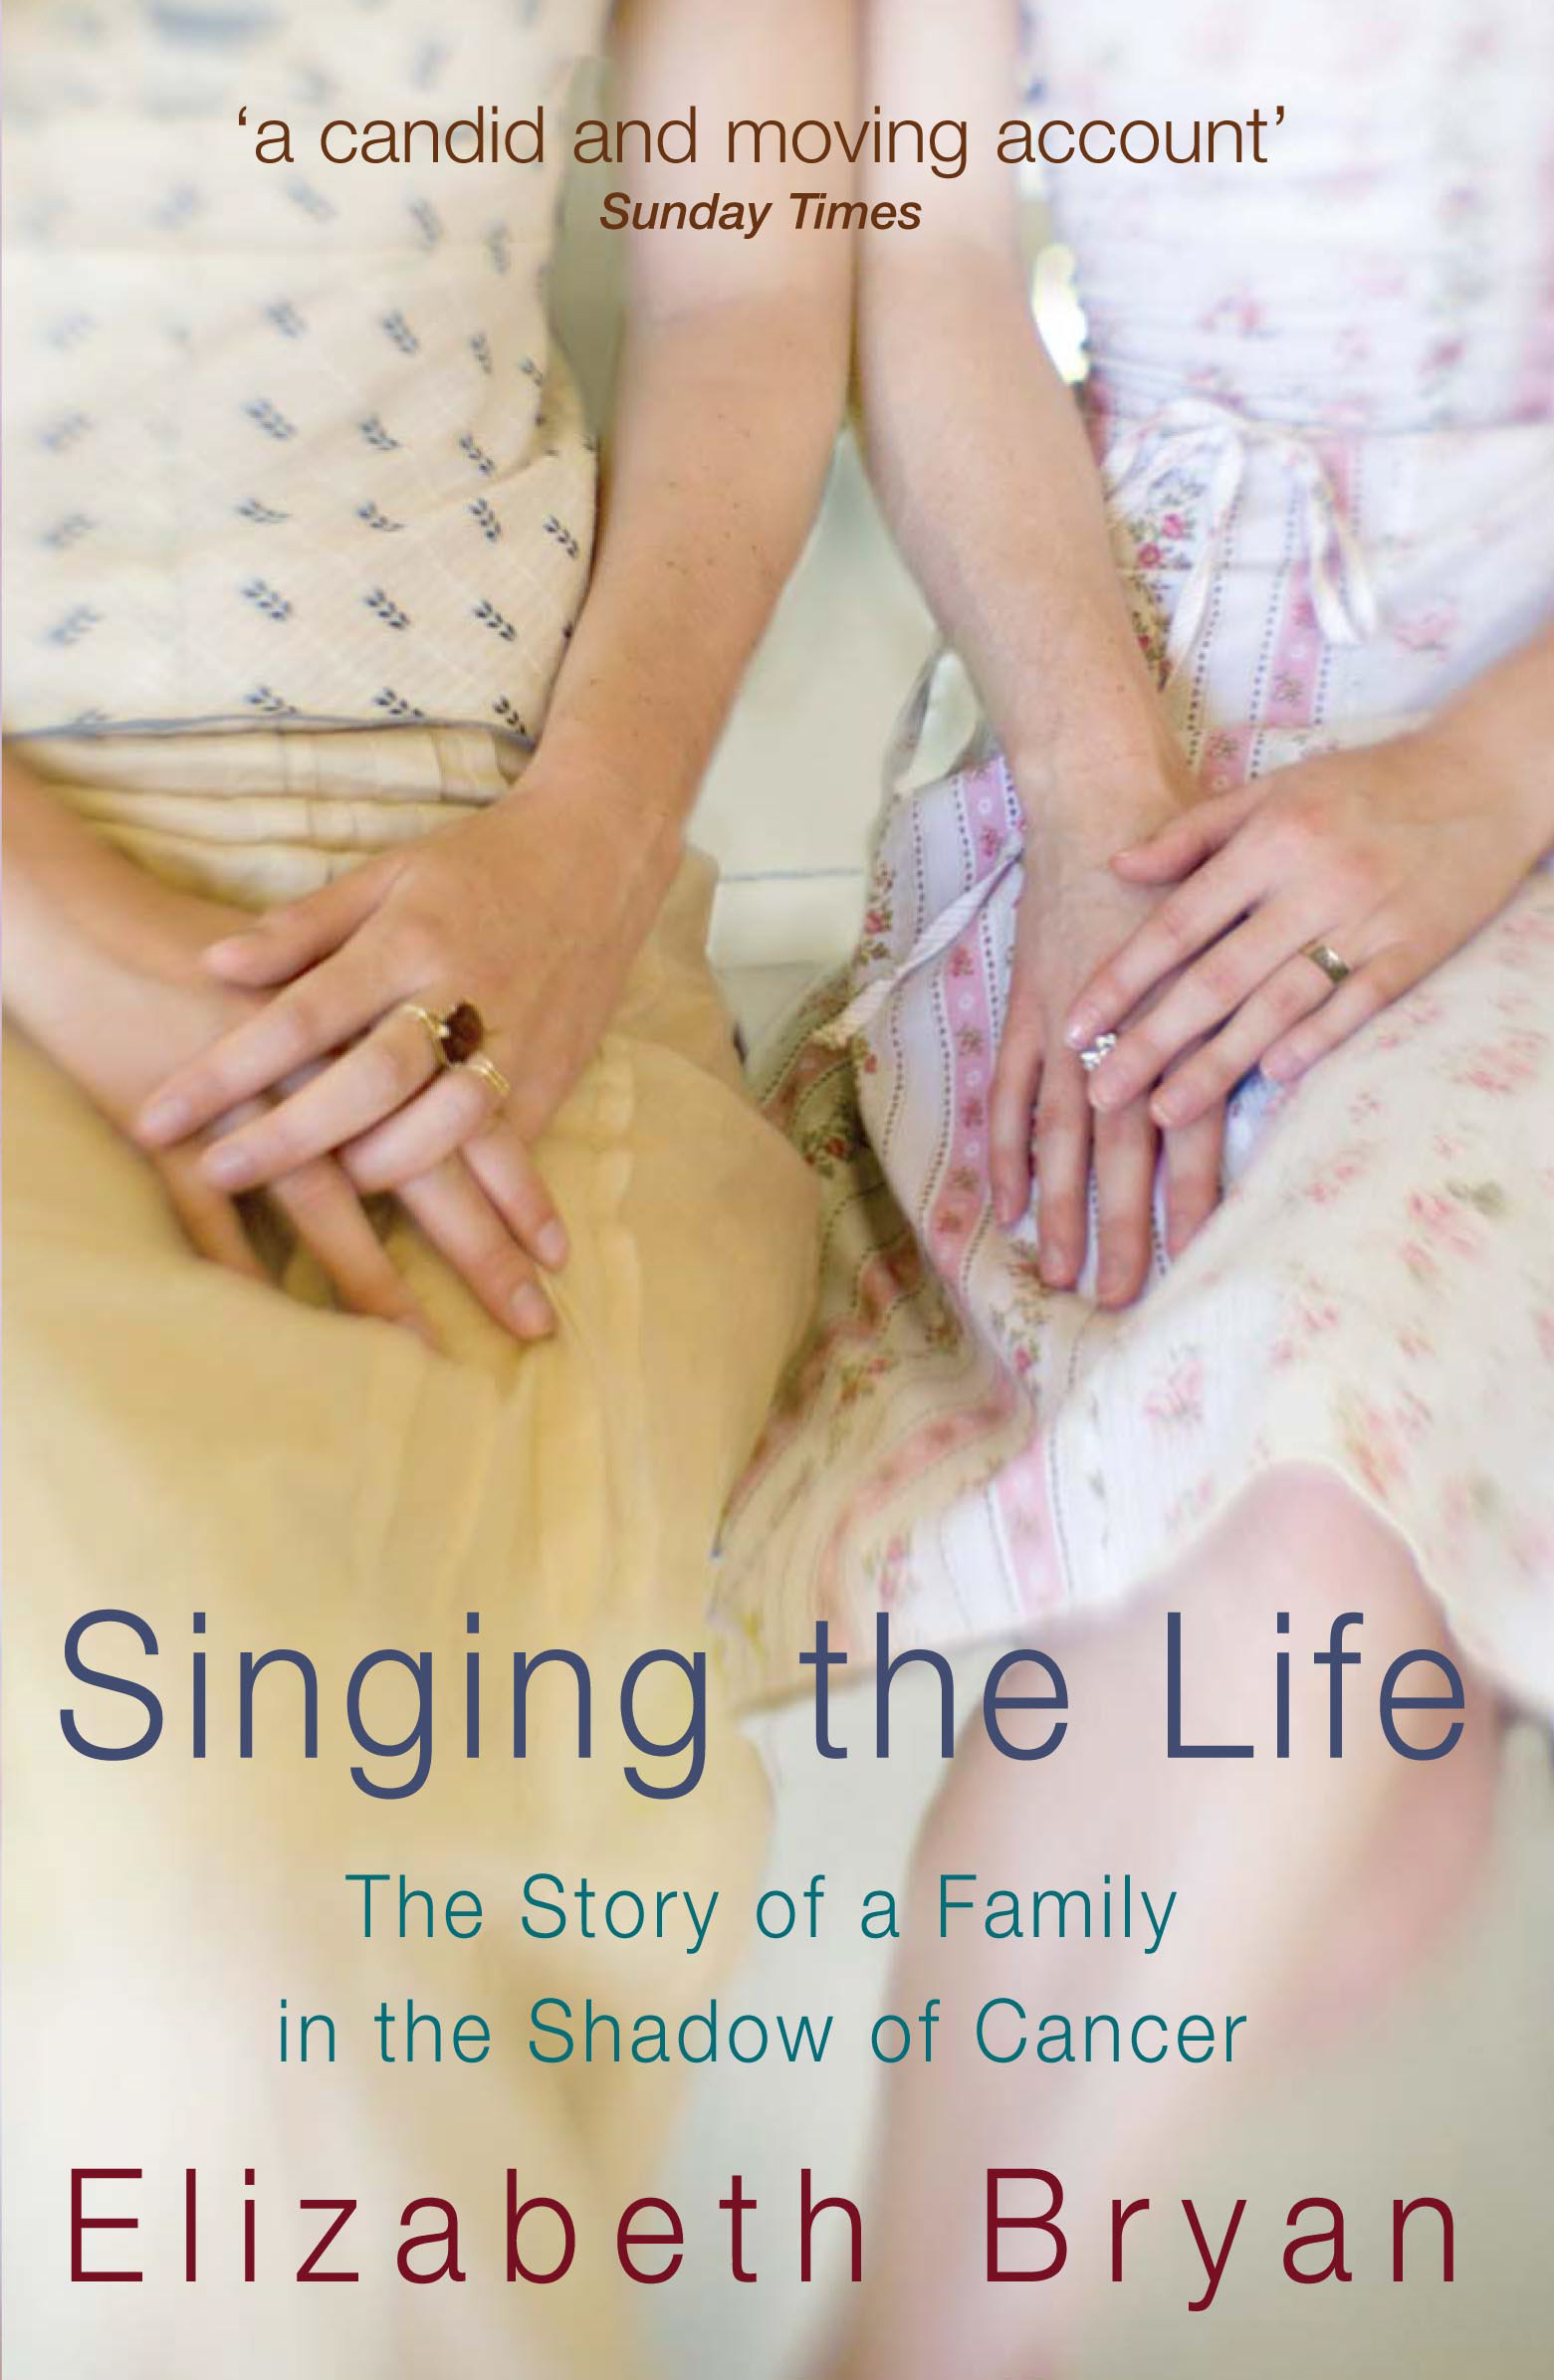 Singing the Life The story of a family living in the shadow of Cancer